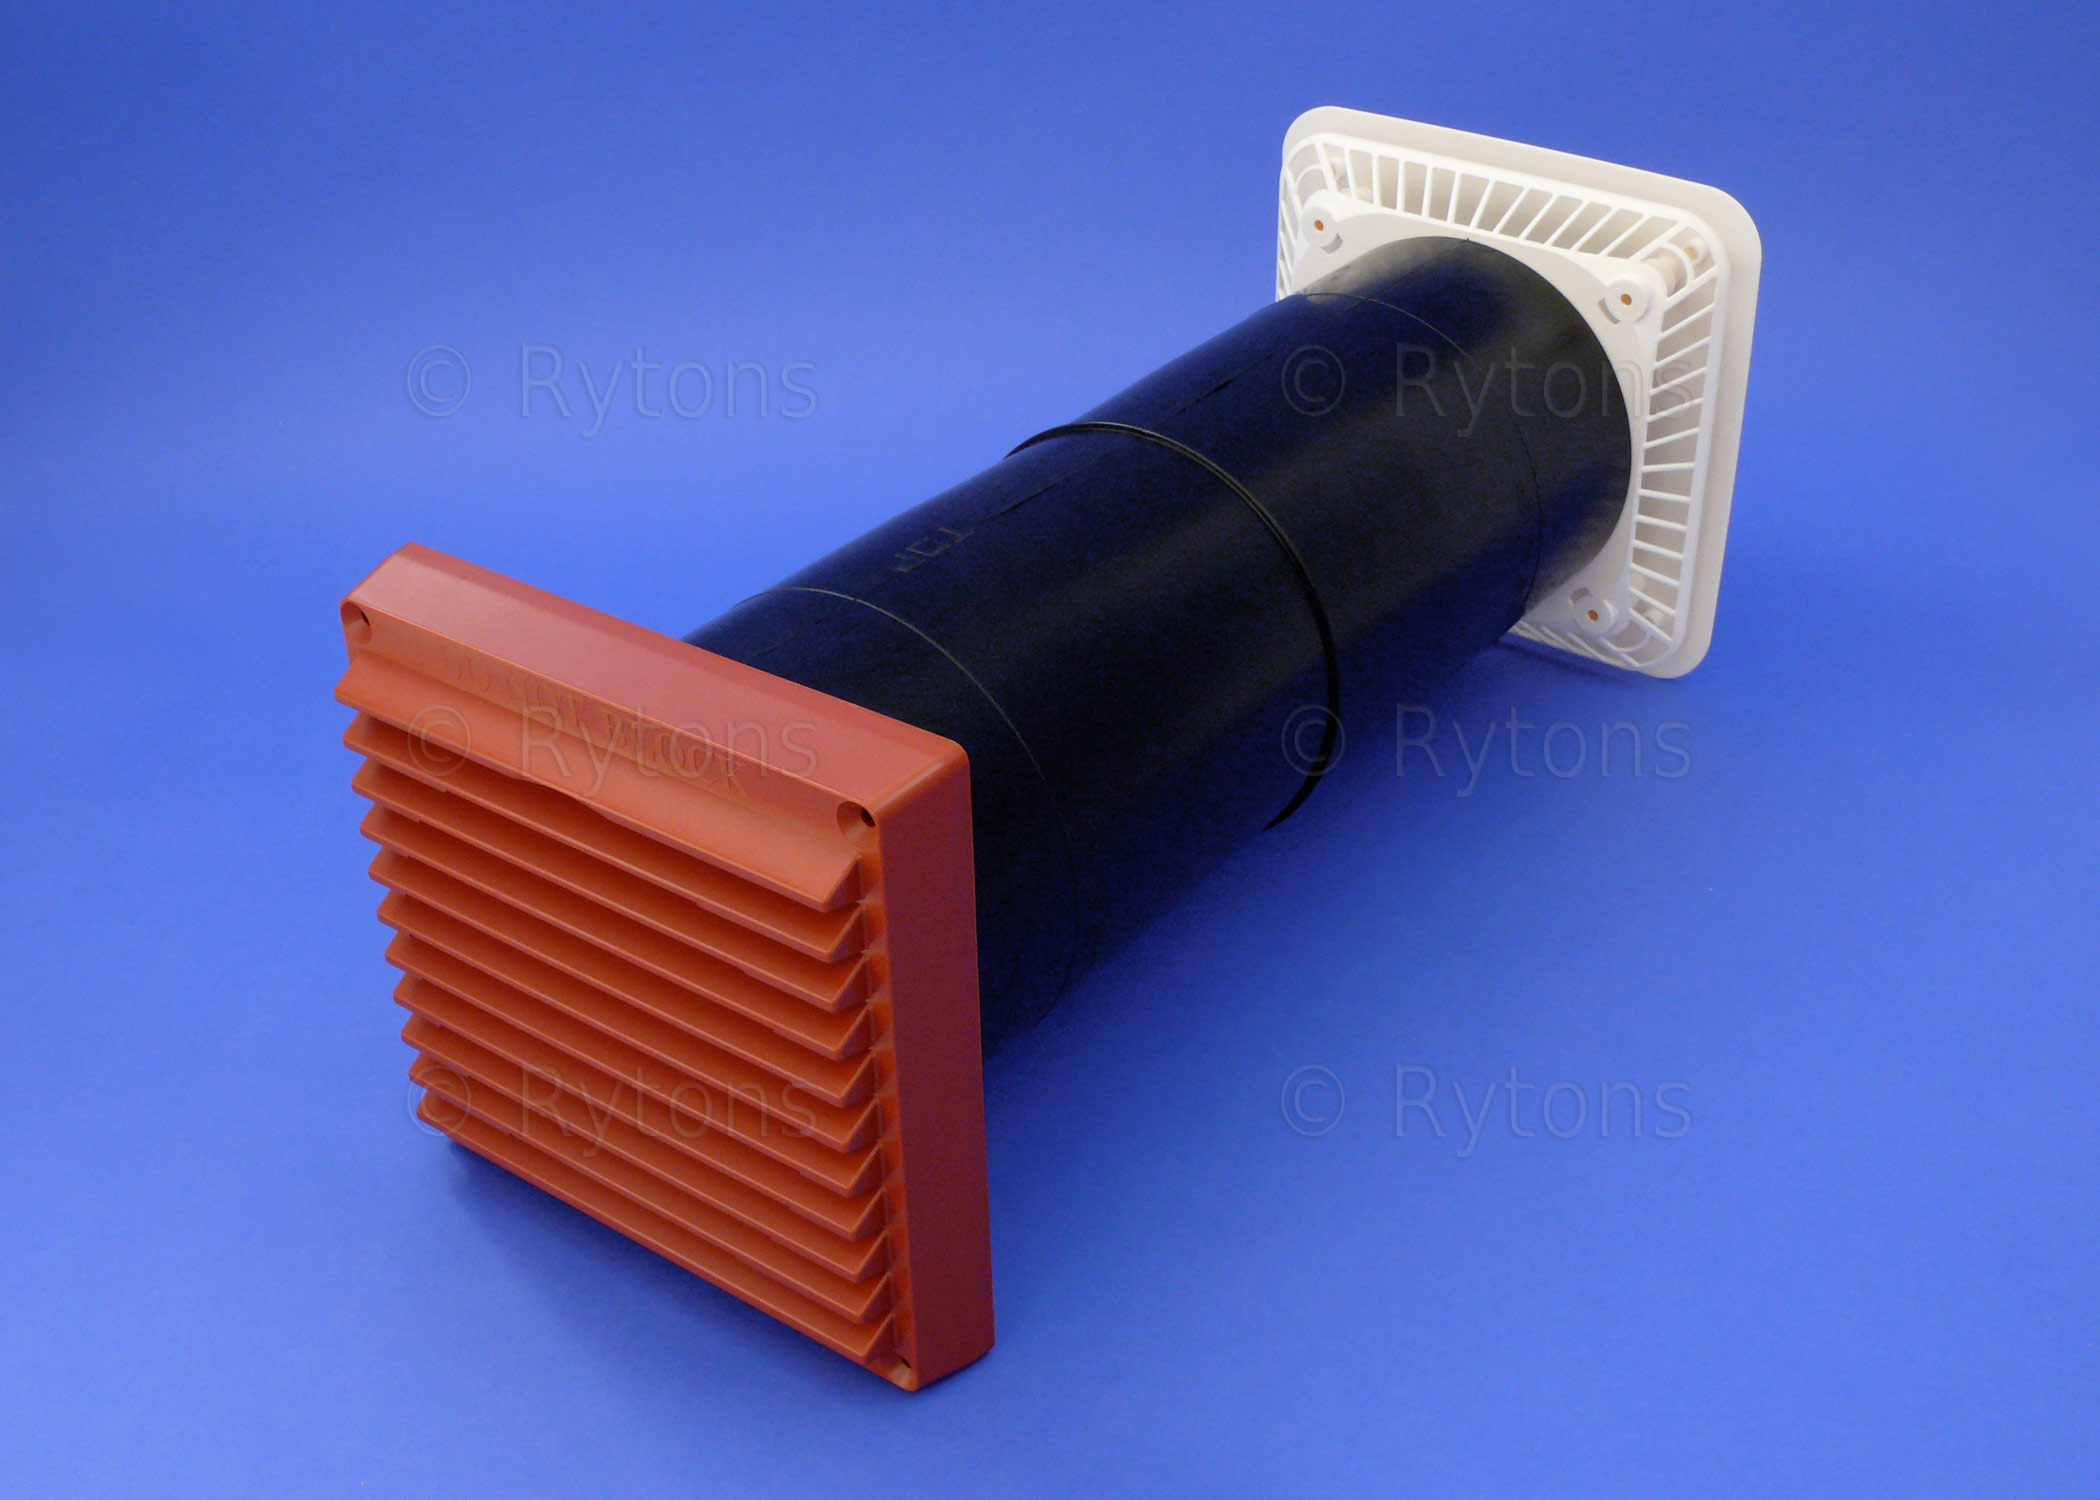 Air Vent For Stoves Installation Products Woodburning Stoves  #1B3CB0